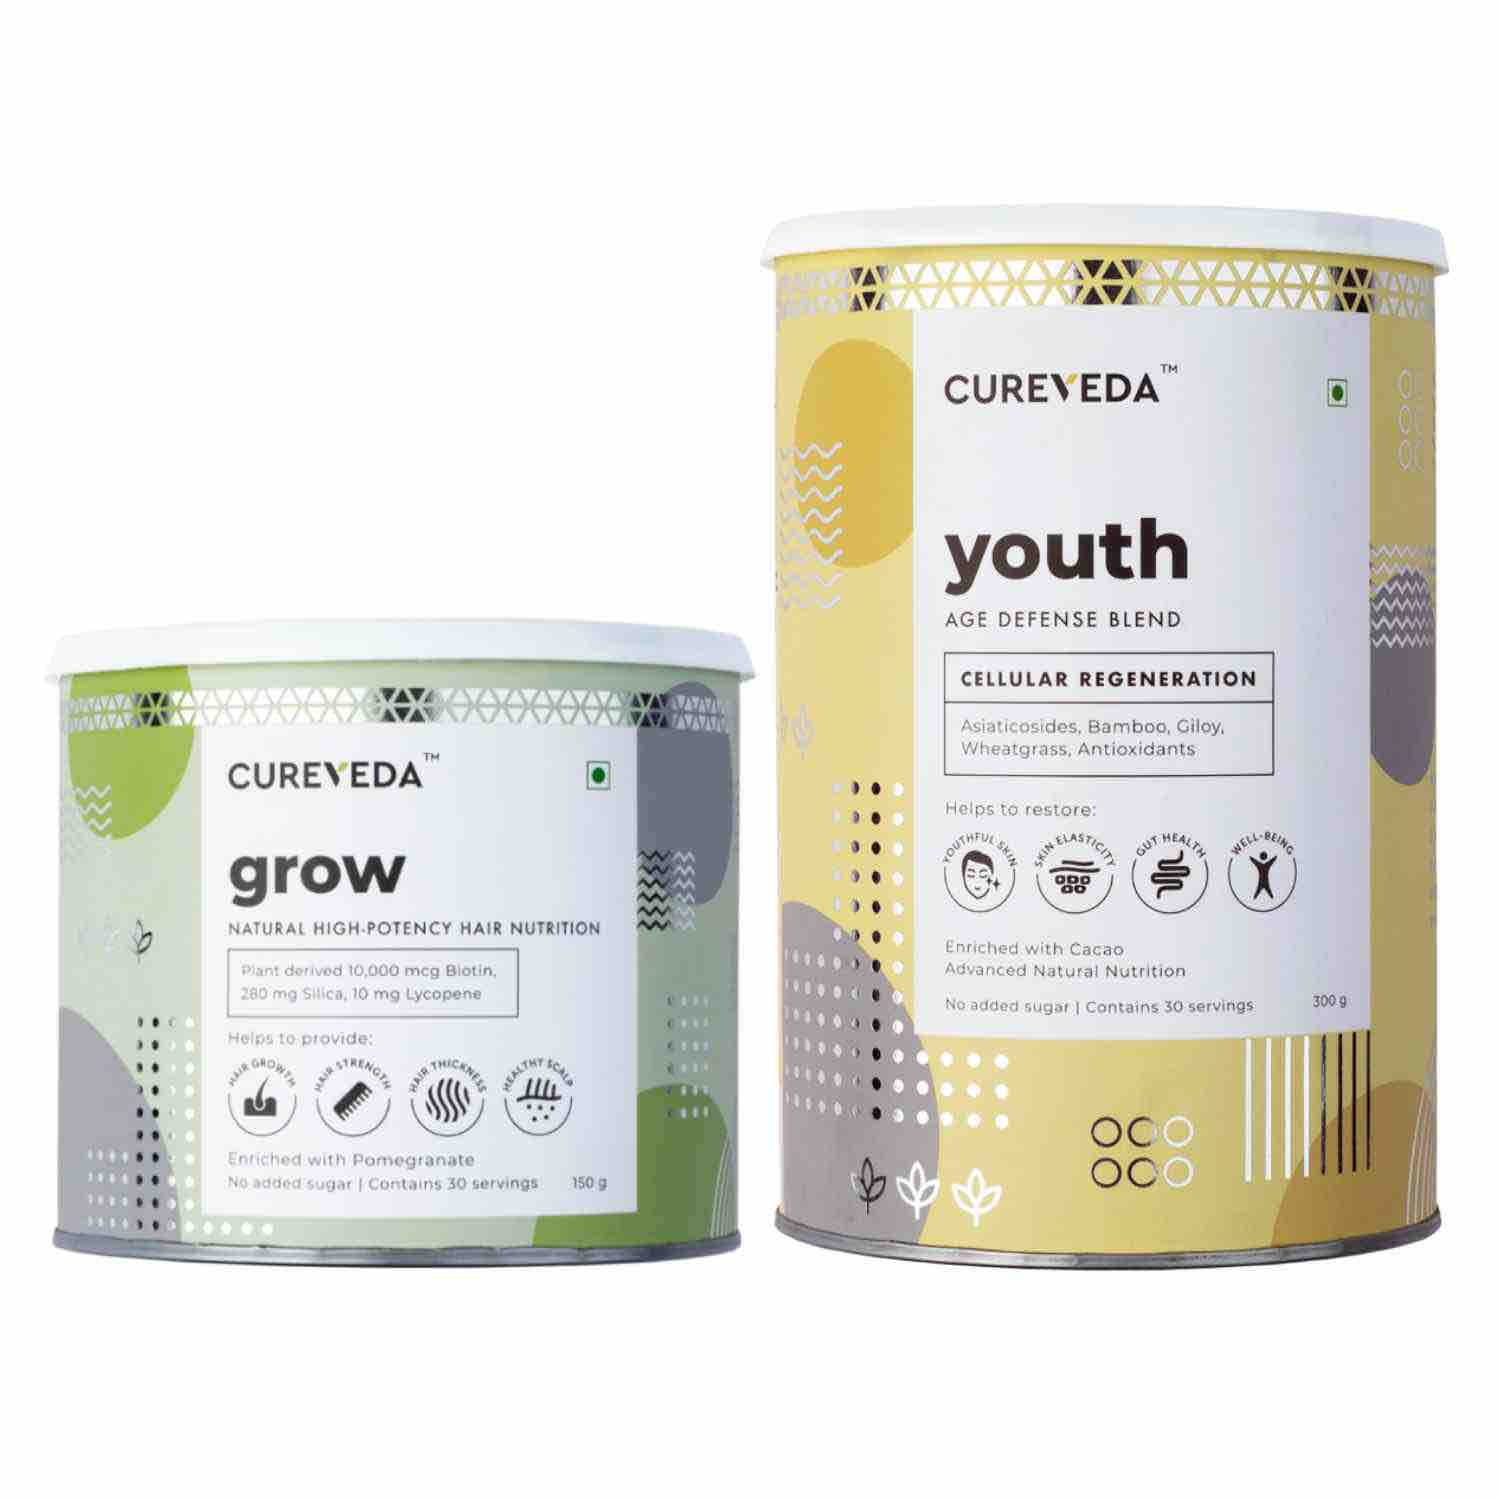 https://curevedaprod.imgix.net/h/t/httpscureveda.comwp-contentuploads202002grow-youth-copy_1.jpg